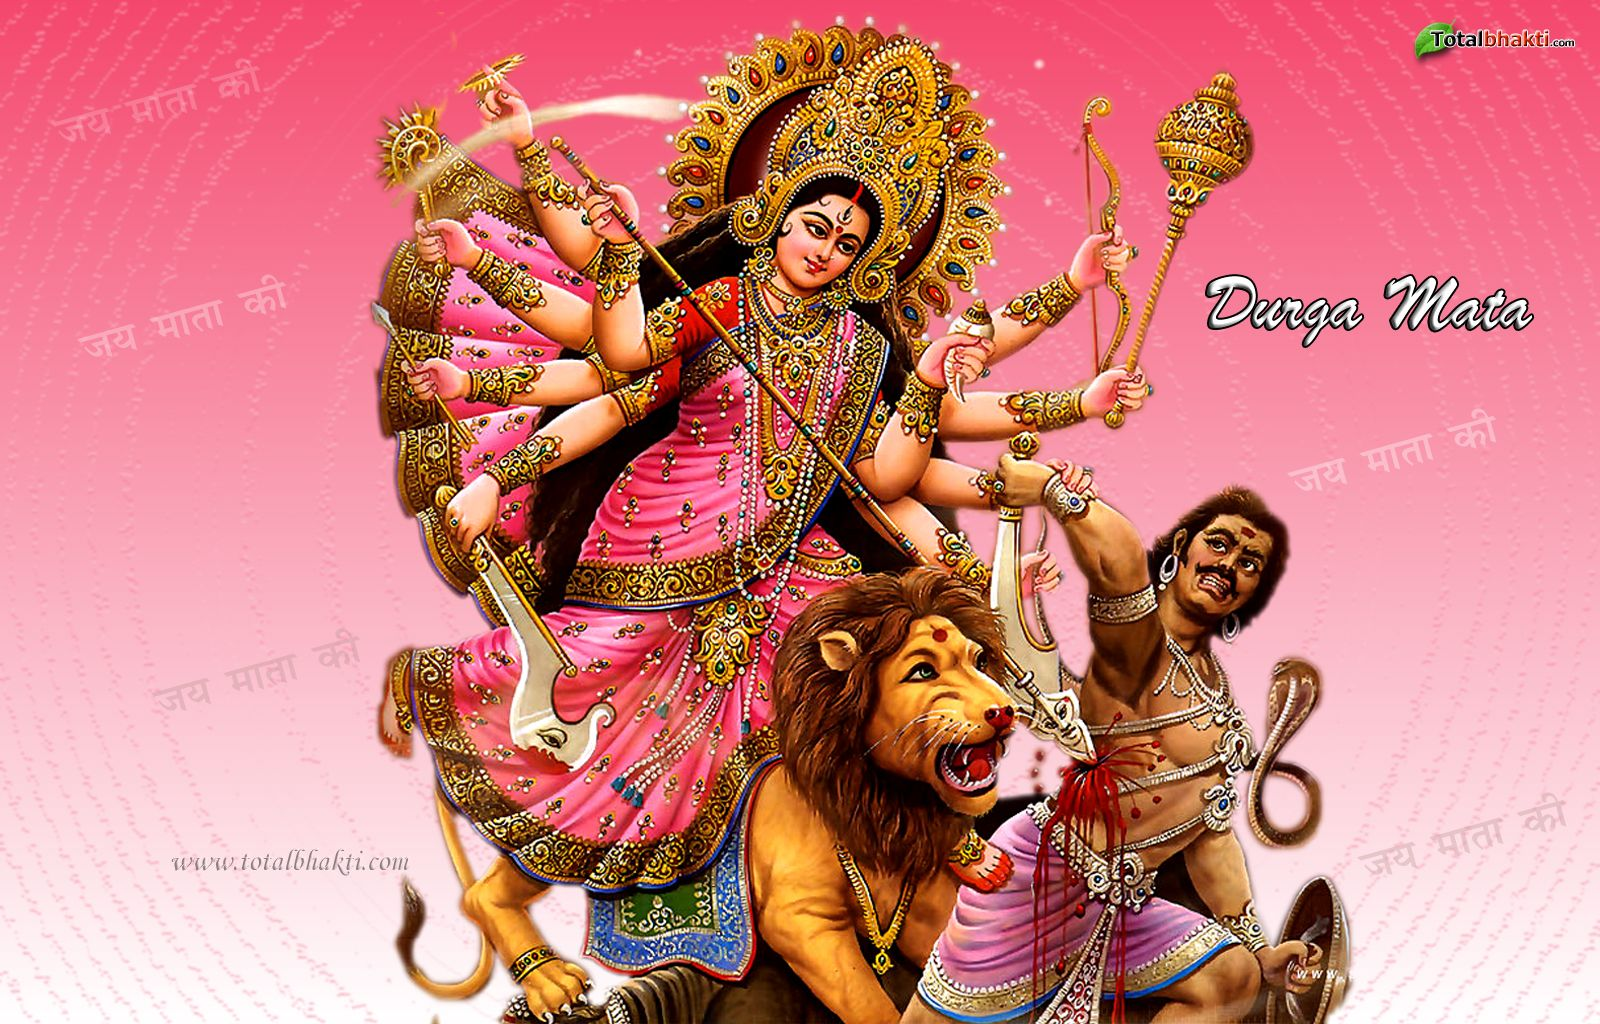 Durga aug 21 16 cute durga puja greetings card to send warm wishes durga aug 21 16 cute durga puja greetings card to send warm wishes of dasara kristyandbryce Image collections